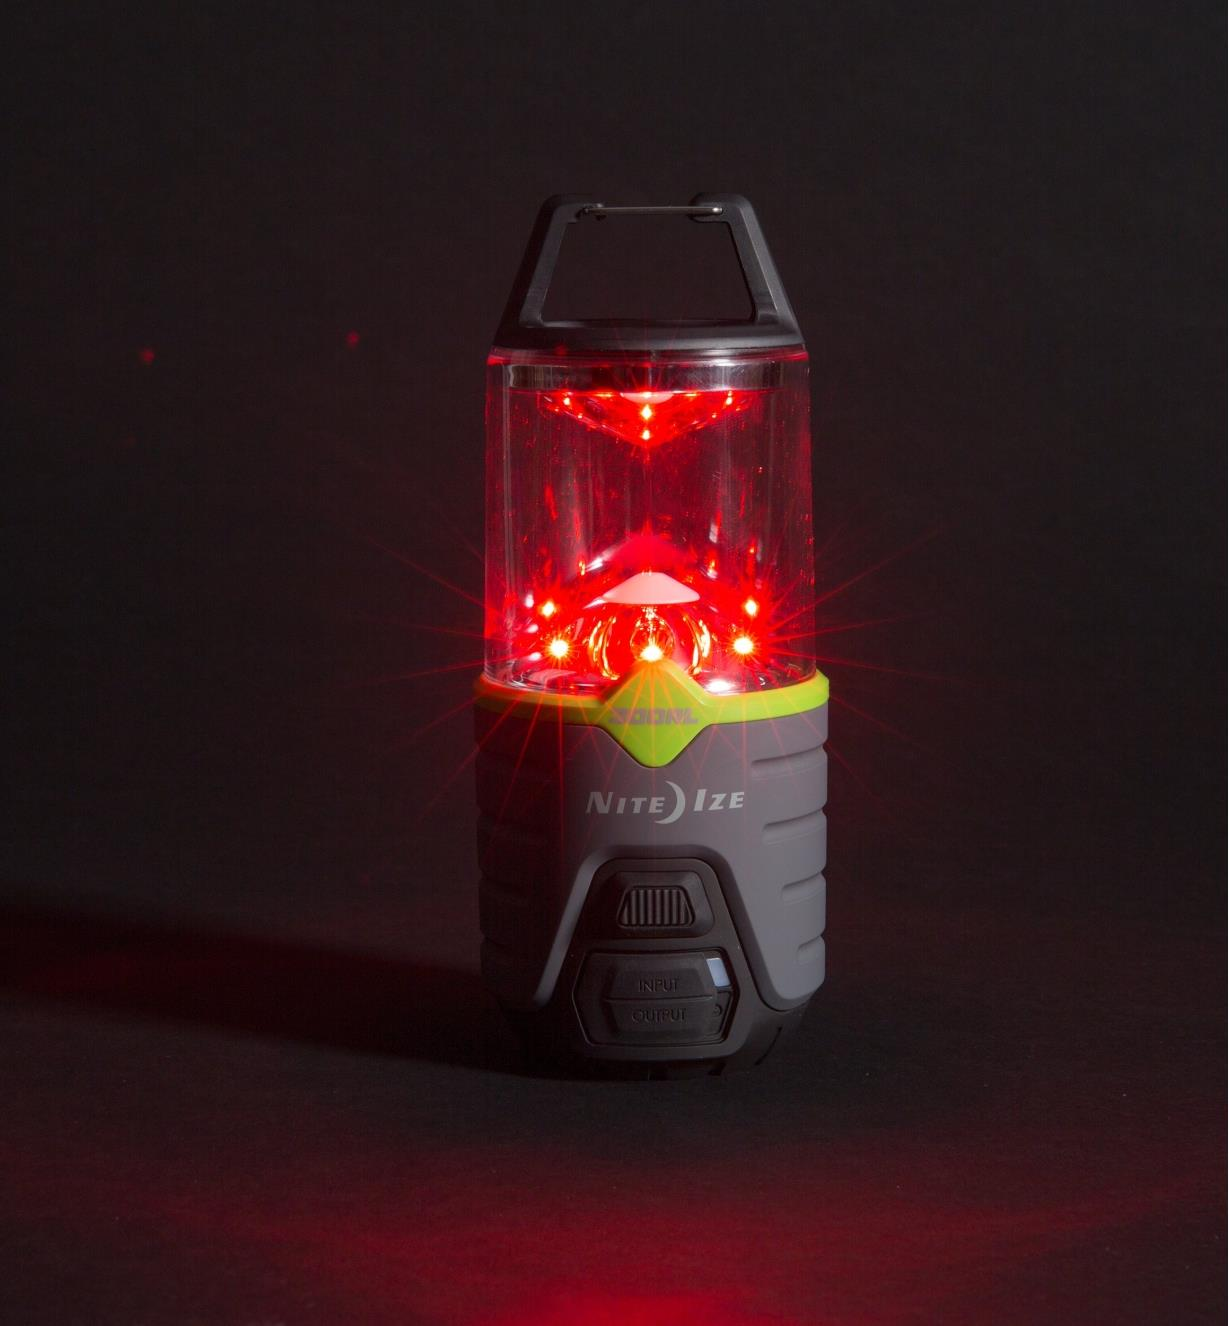 300 lm Nite Ize Rechargeable Radiant Lantern in red LED mode